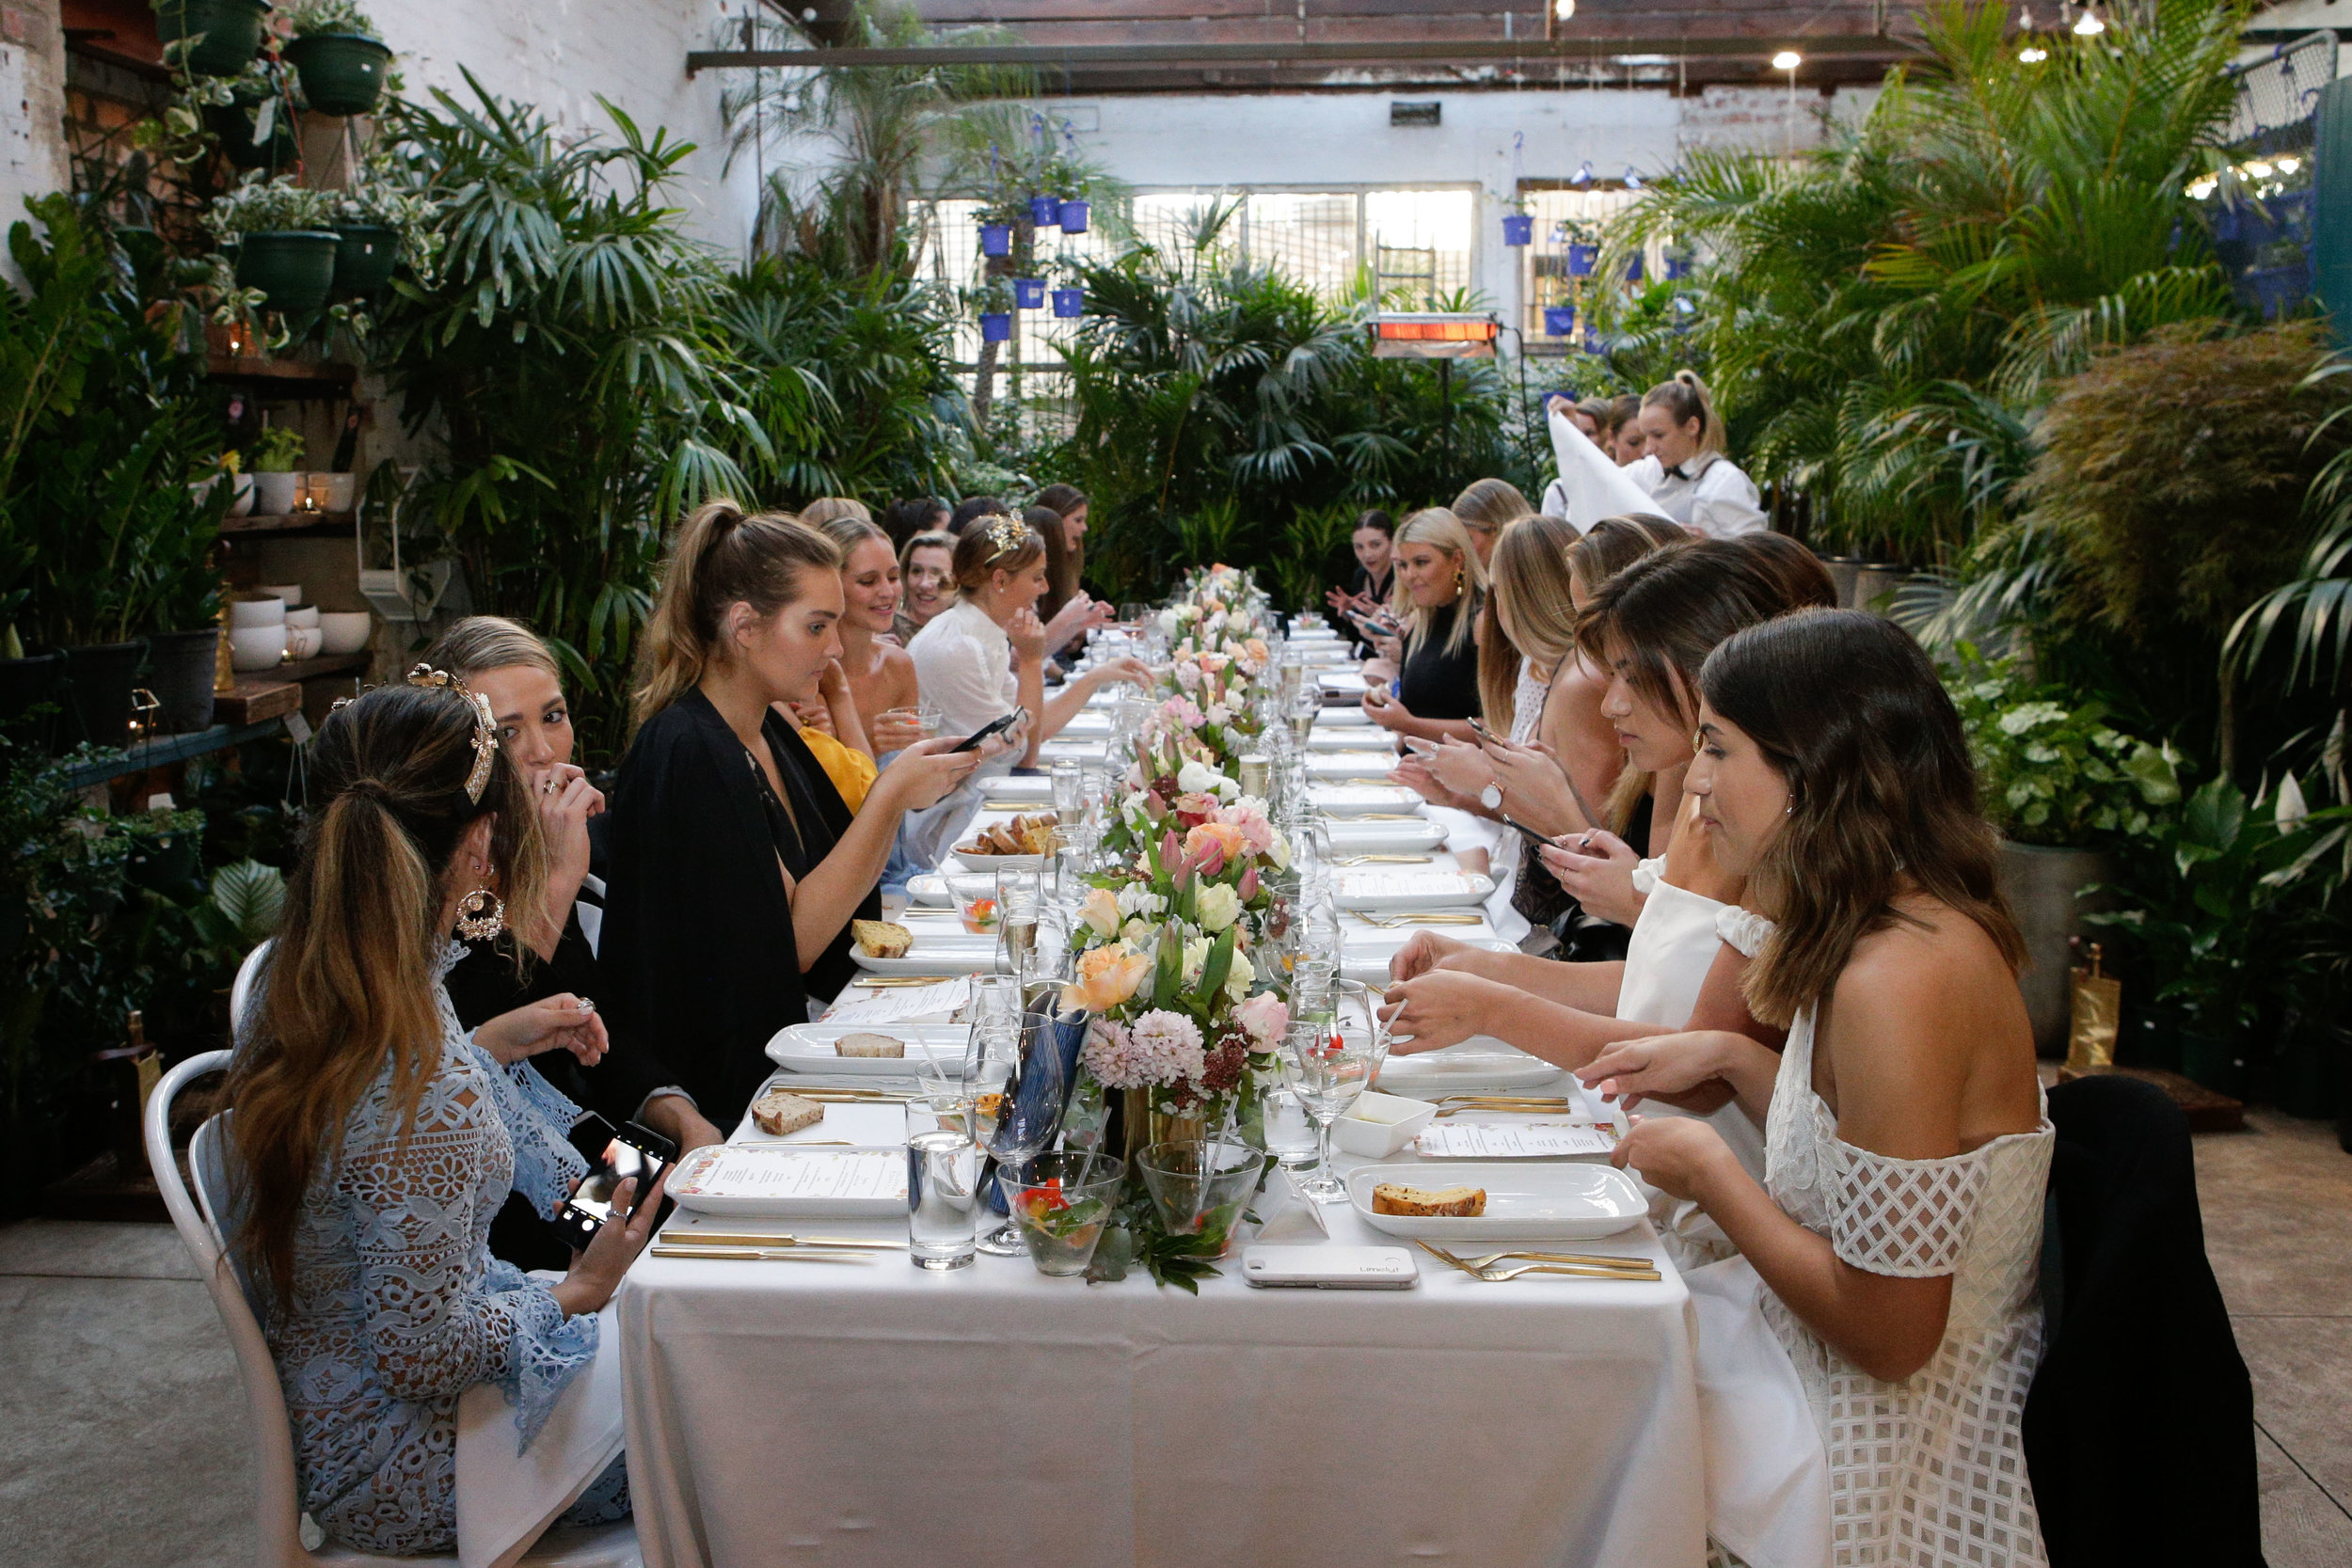 yellowglen-terrace-melbourne-cup-launch-dinner-table-and-guests-1.jpg